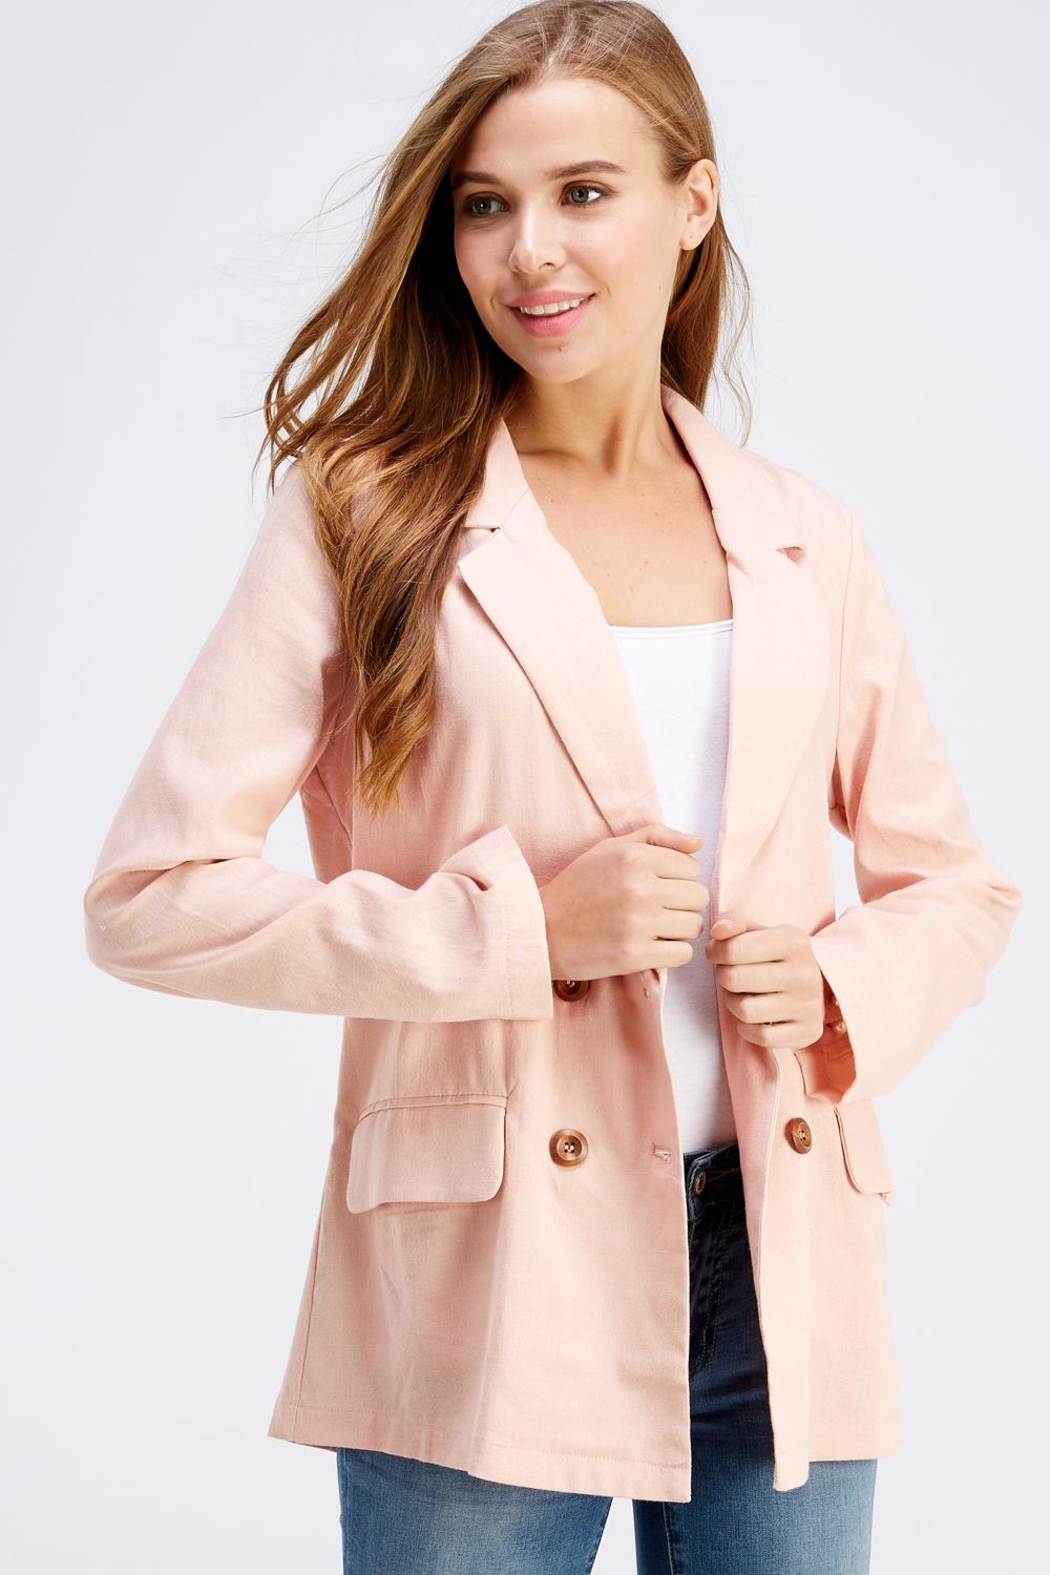 Cotton Candy LA Pink Linen Blazer - Back Cropped Image